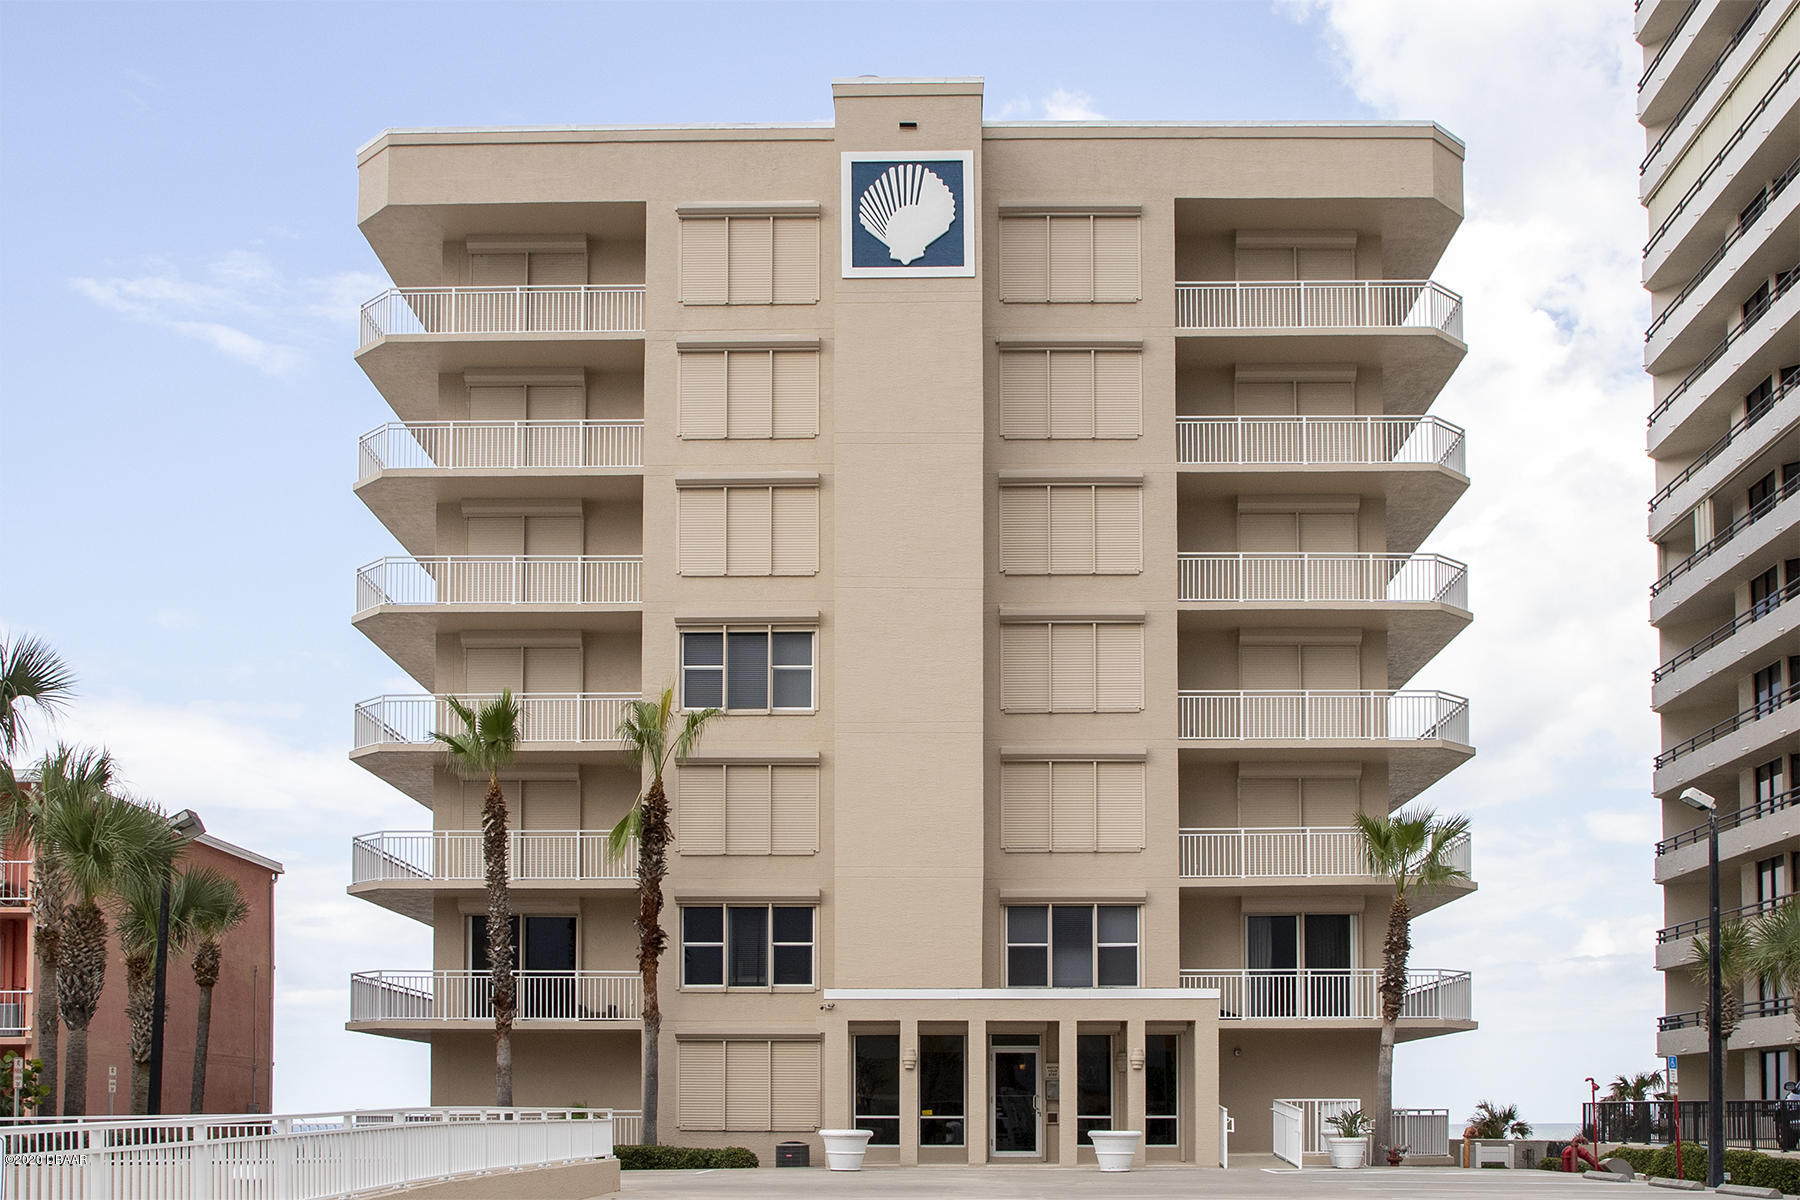 3851 Atlantic Daytona Beach - 1